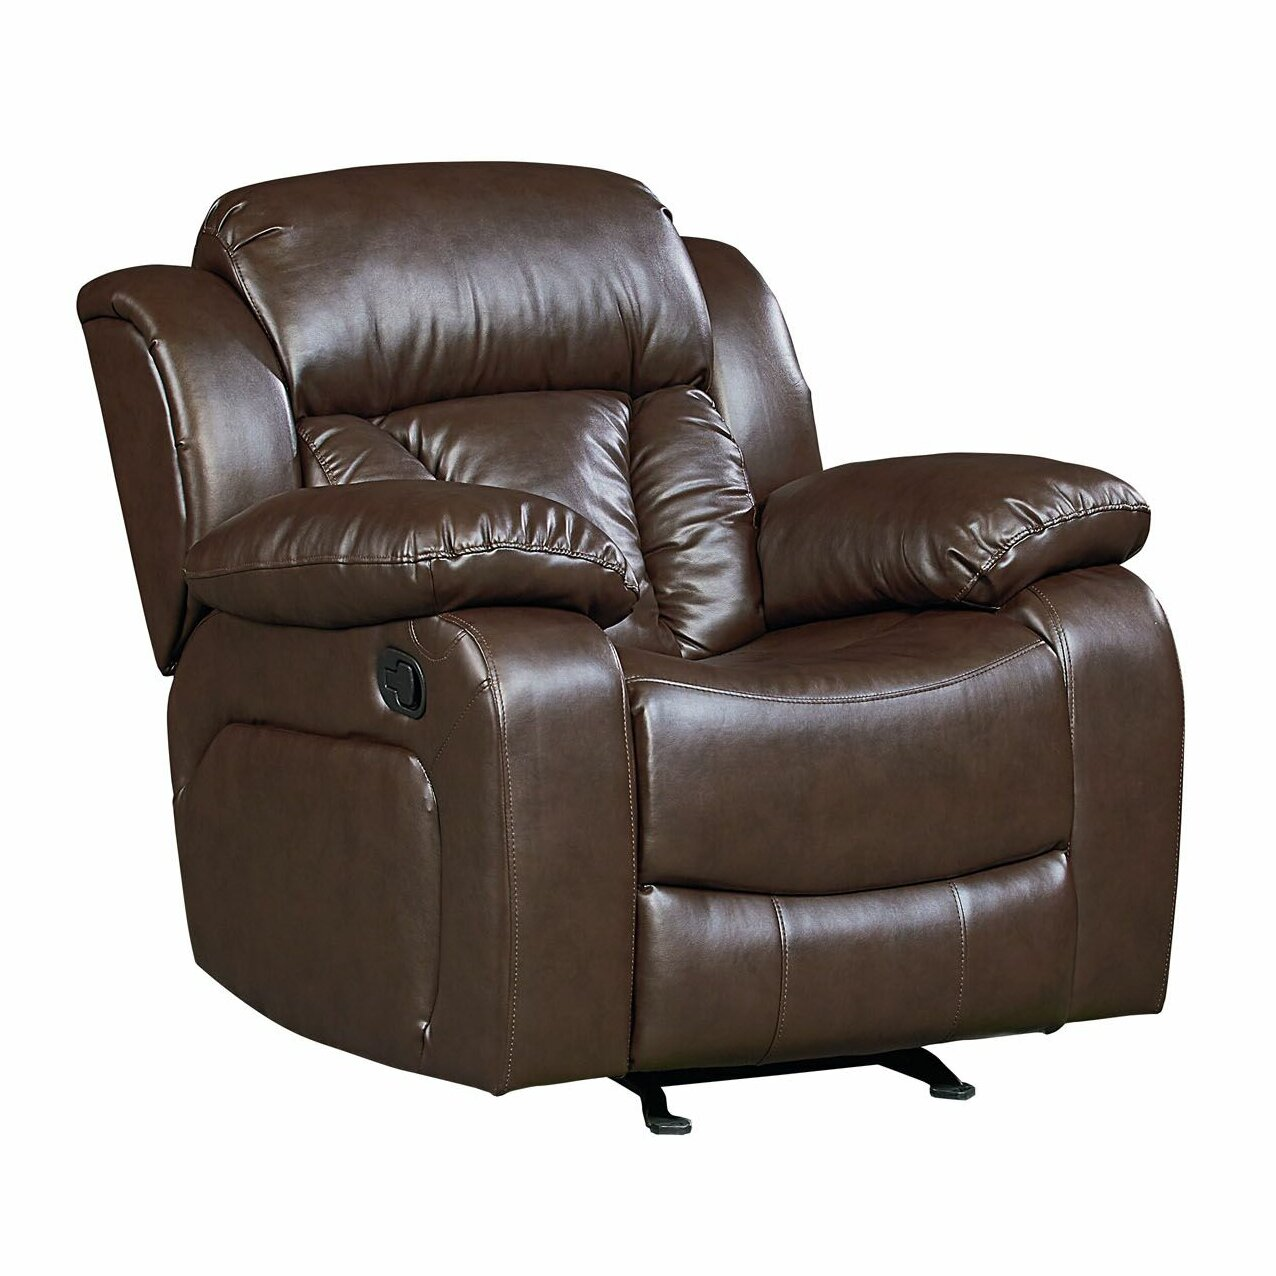 Red Barrel Studio Delaney Faux Leather Rocker Recliner